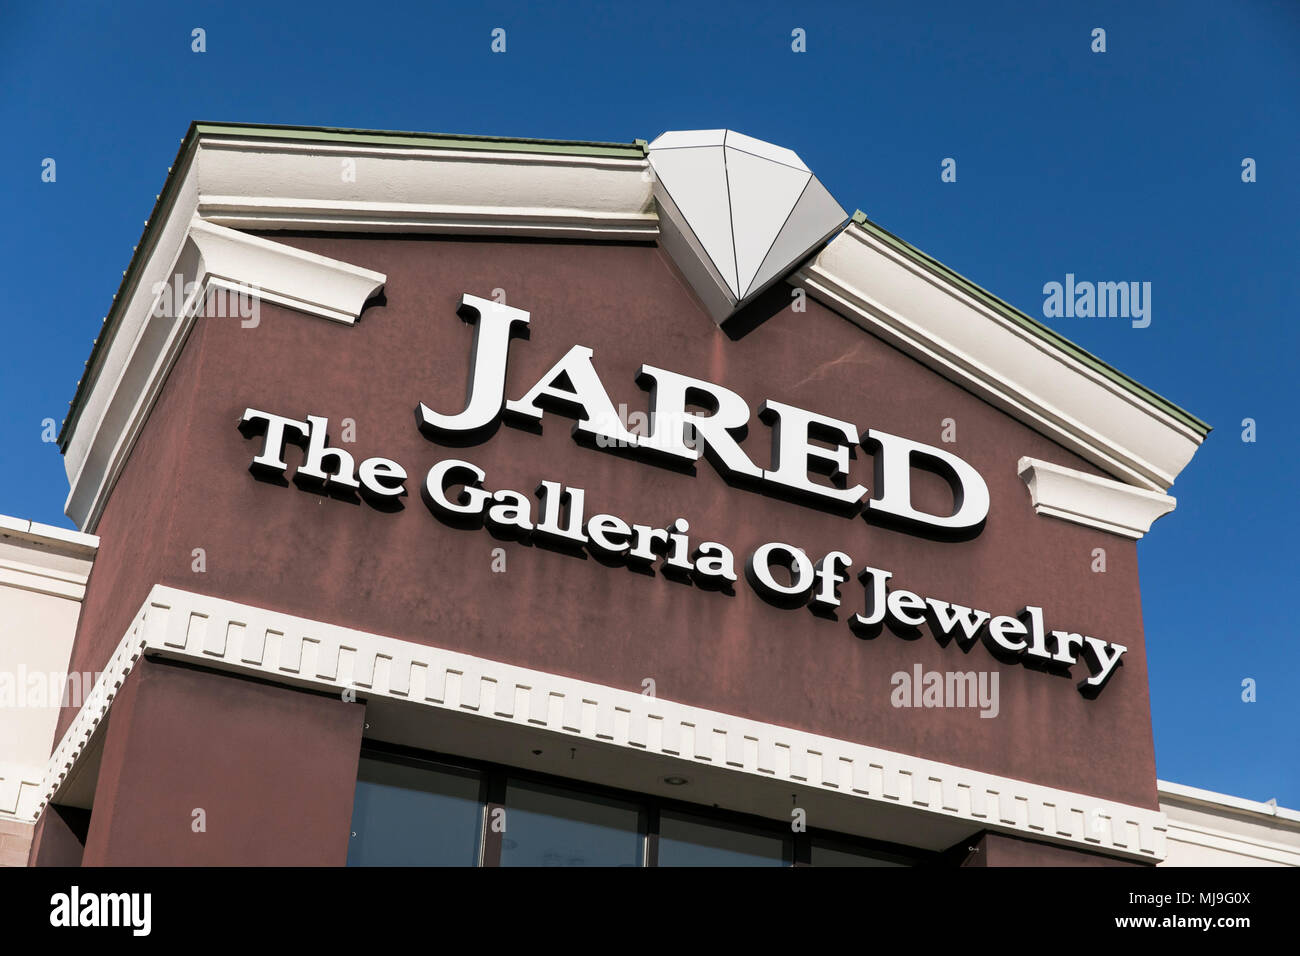 A logo sign outside of a Jared the Galleria of Jewelry retail store